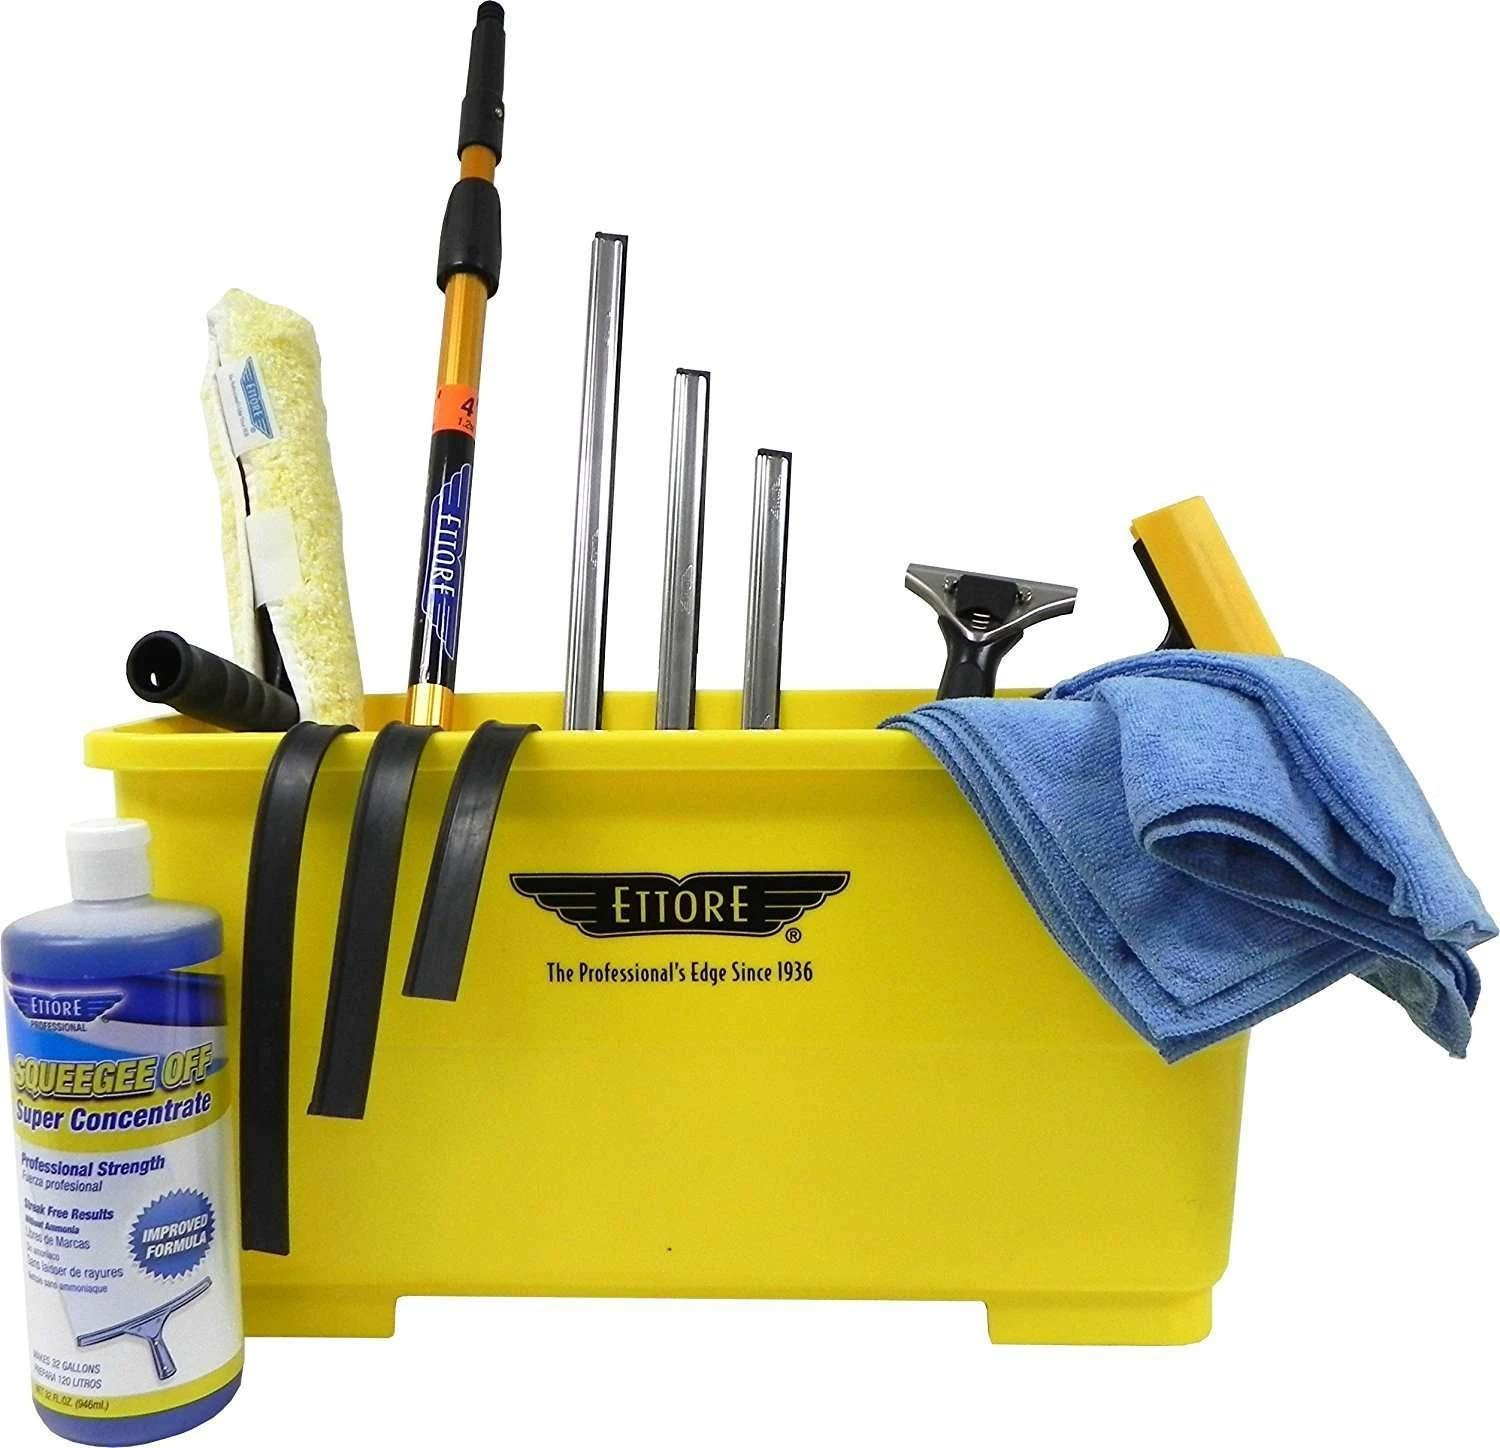 Image of Ettore Professional Window Cleaning Kit with 4' Extension Pole Health and Household